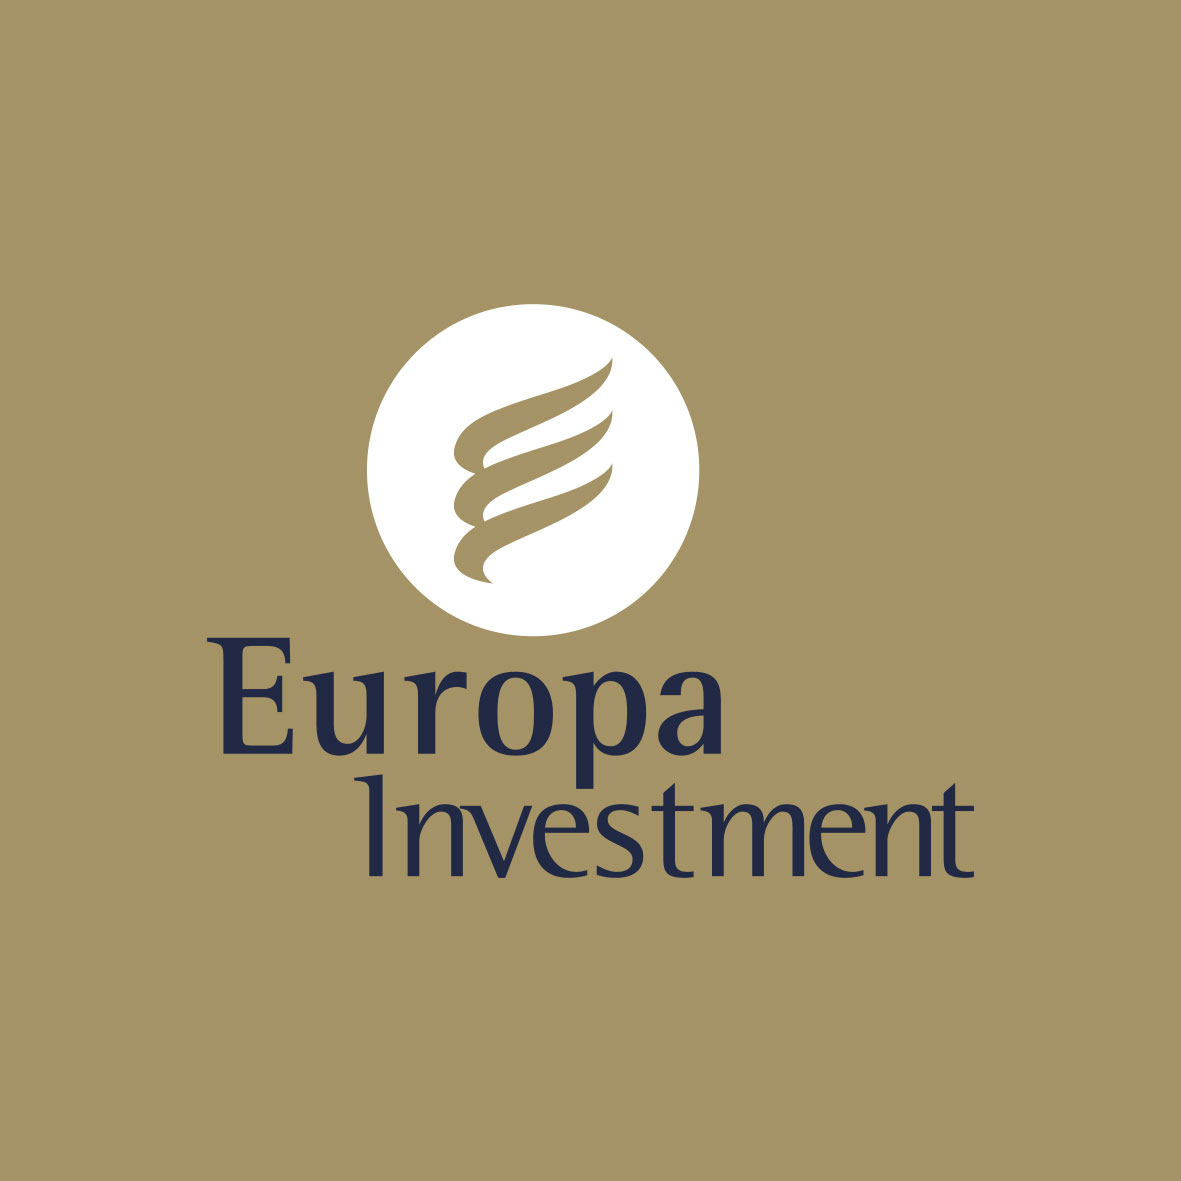 Europa Investment - Real estate agency